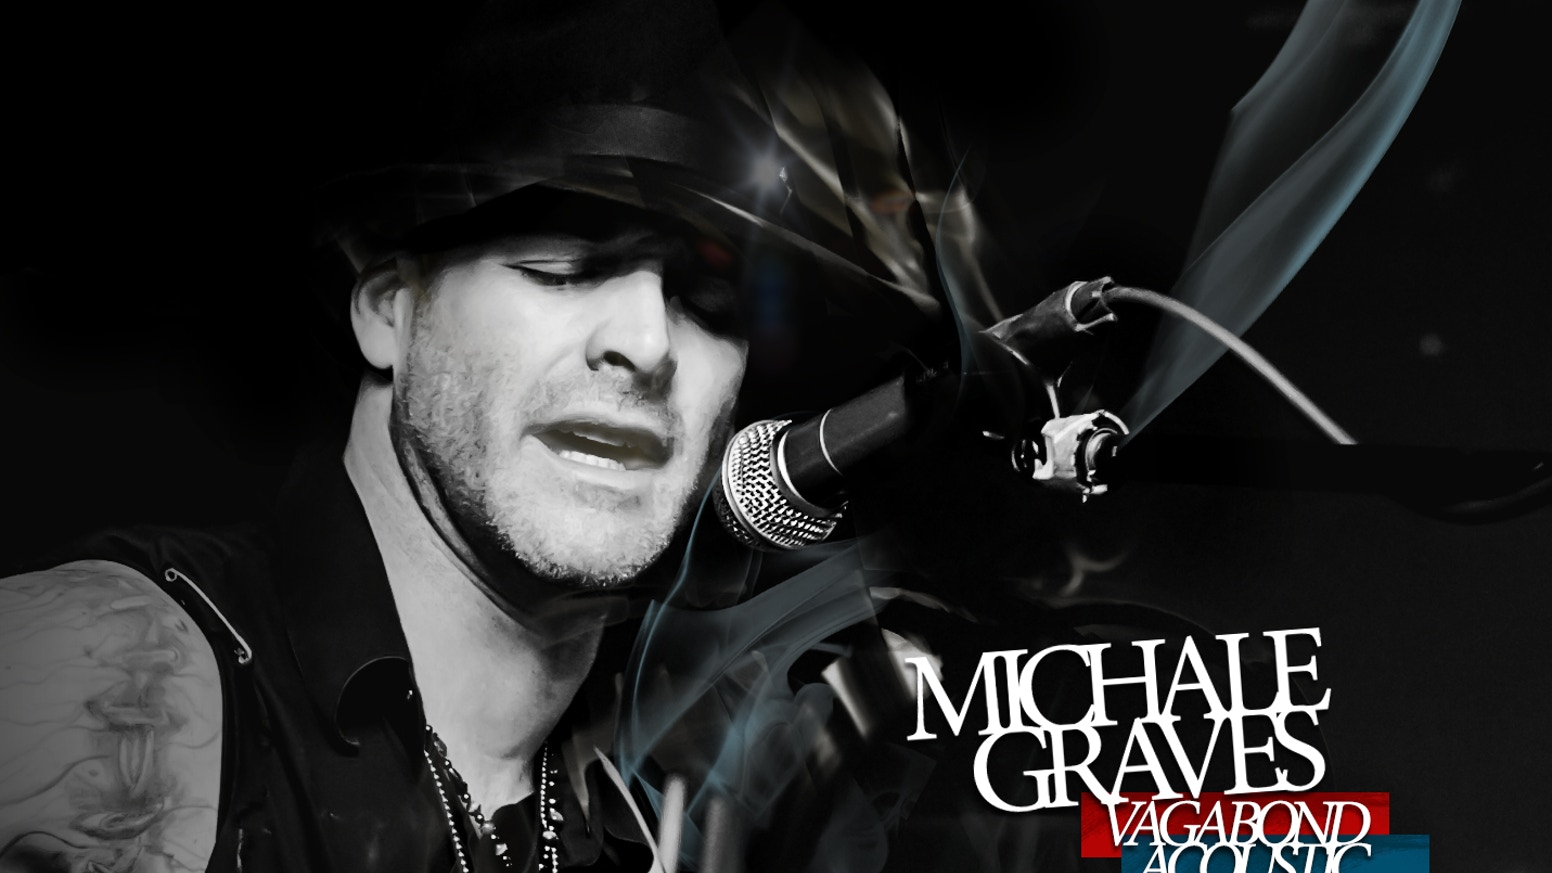 Michale Graves Vagabond Acoustic Extremely Limited Edition By